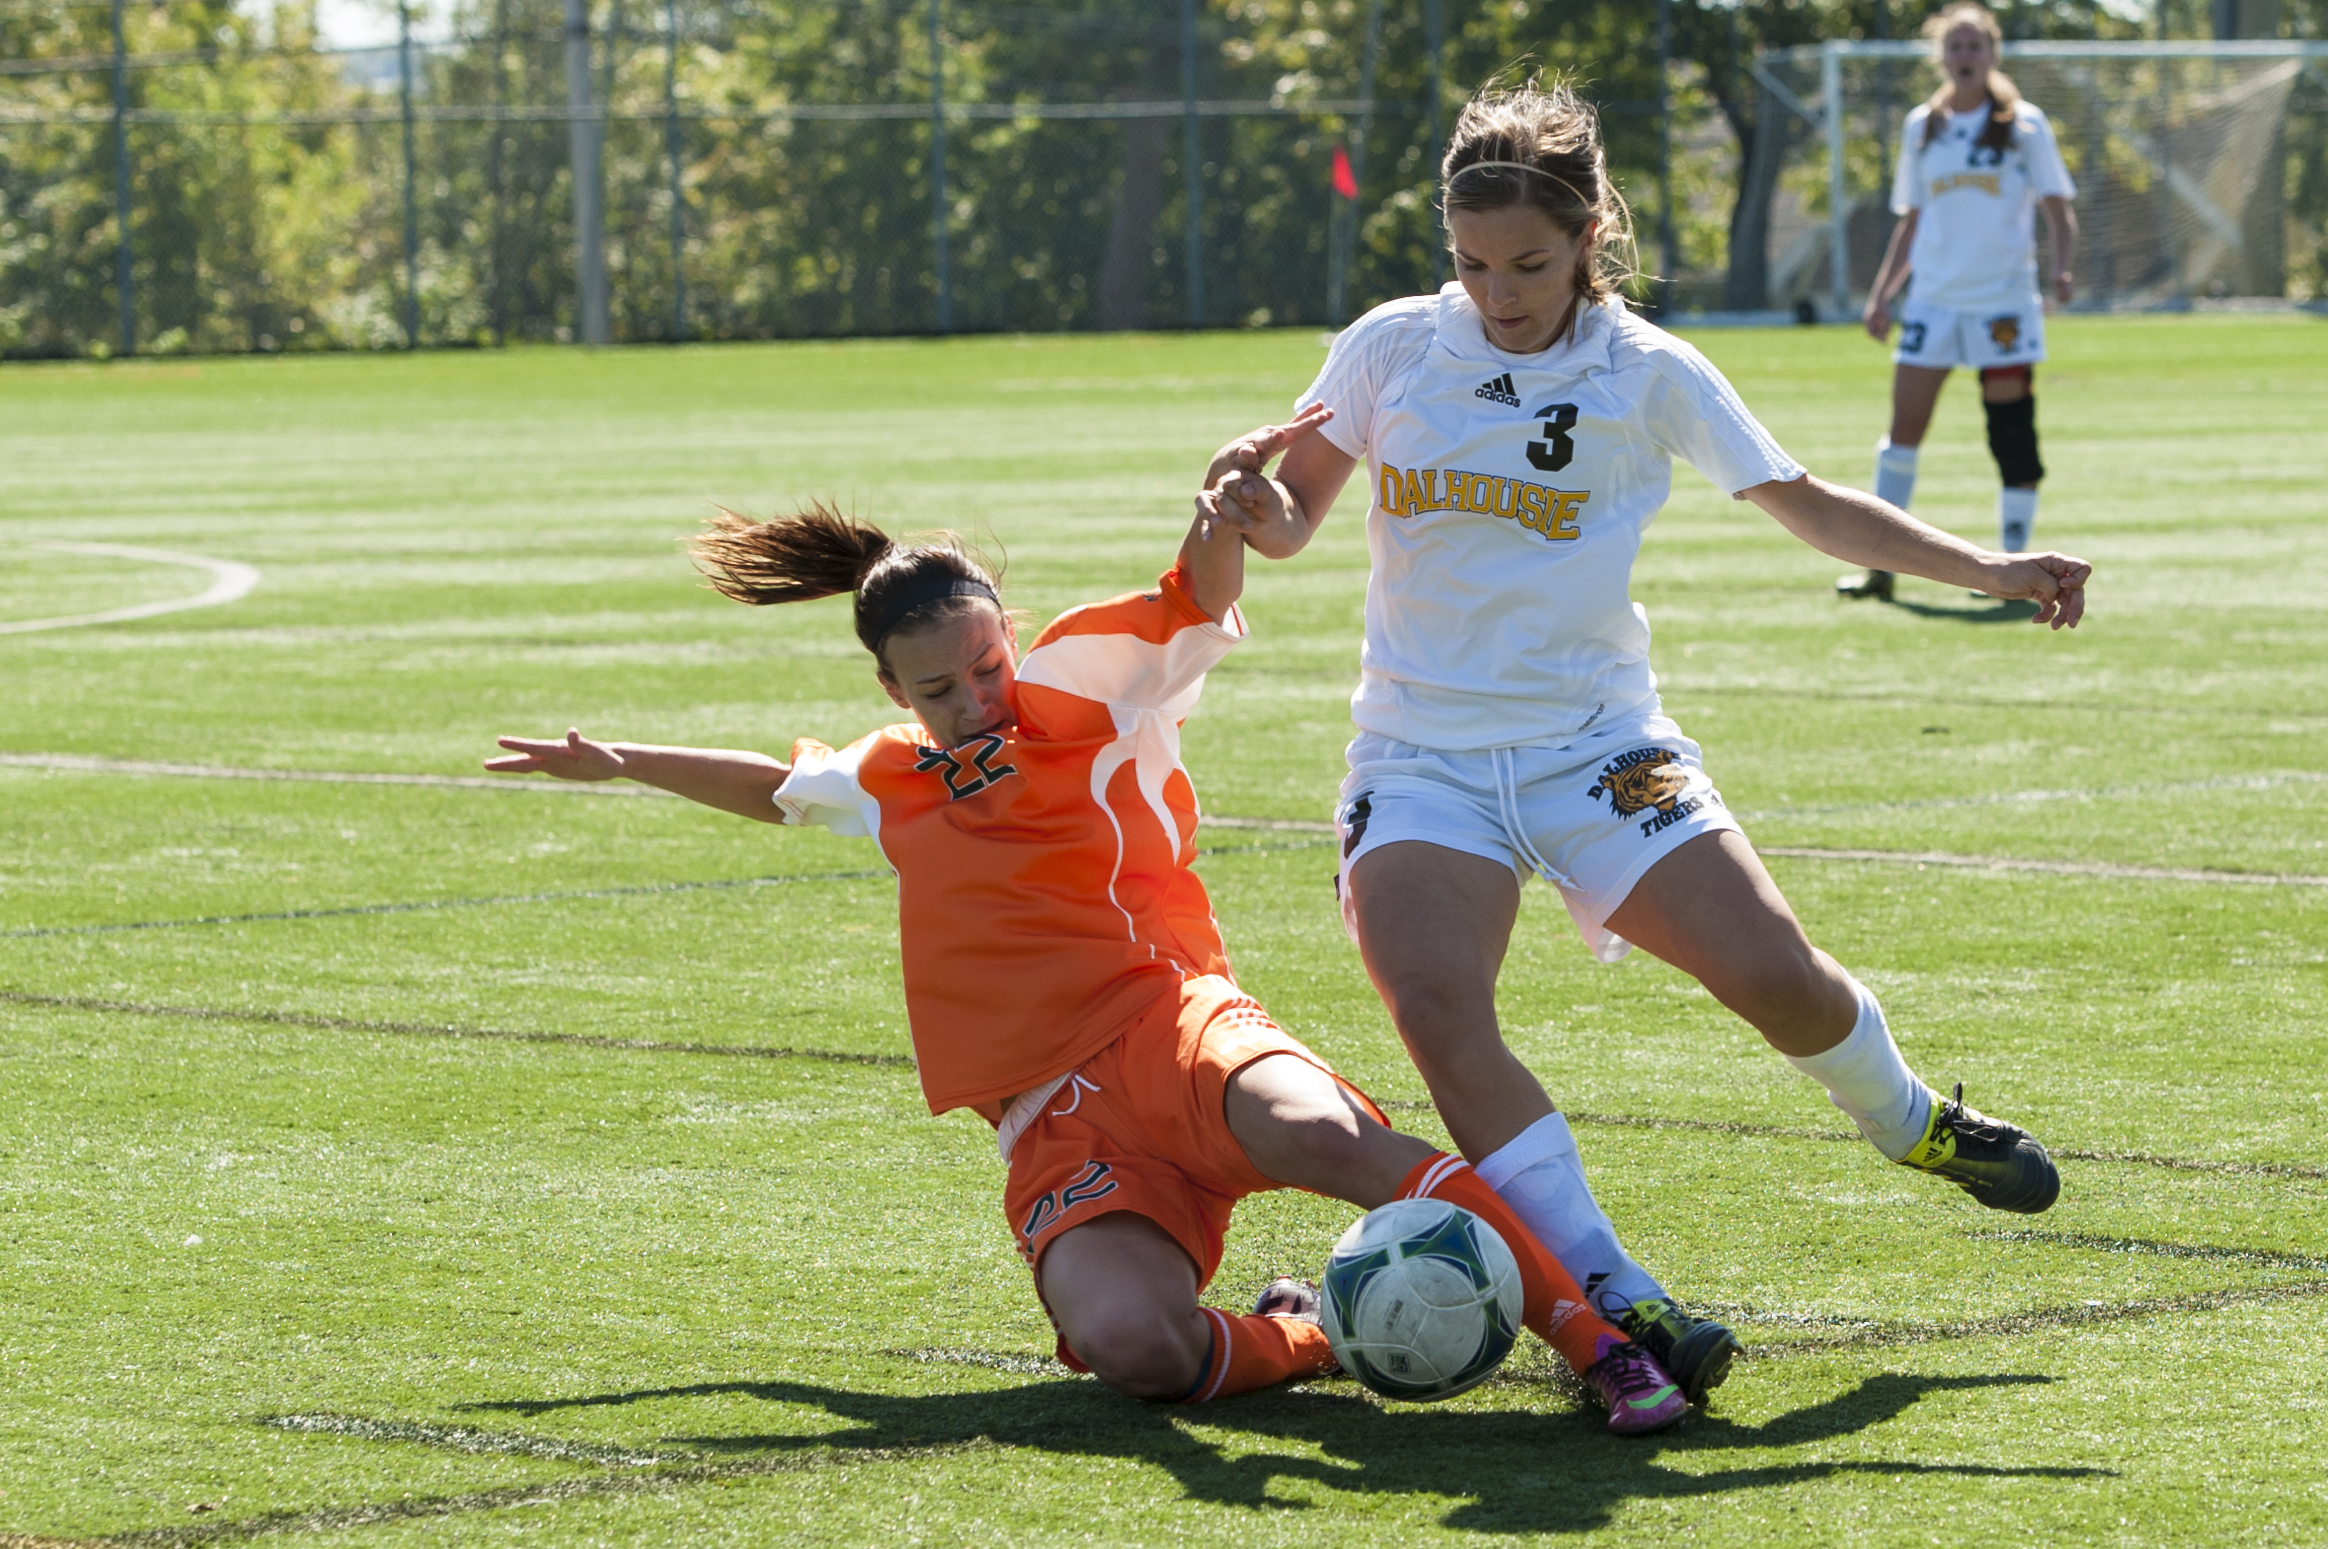 Andie Vanderlaan (3) on attack against the Capers. (Photo by Chris Parent via Dalhousie Athletics)